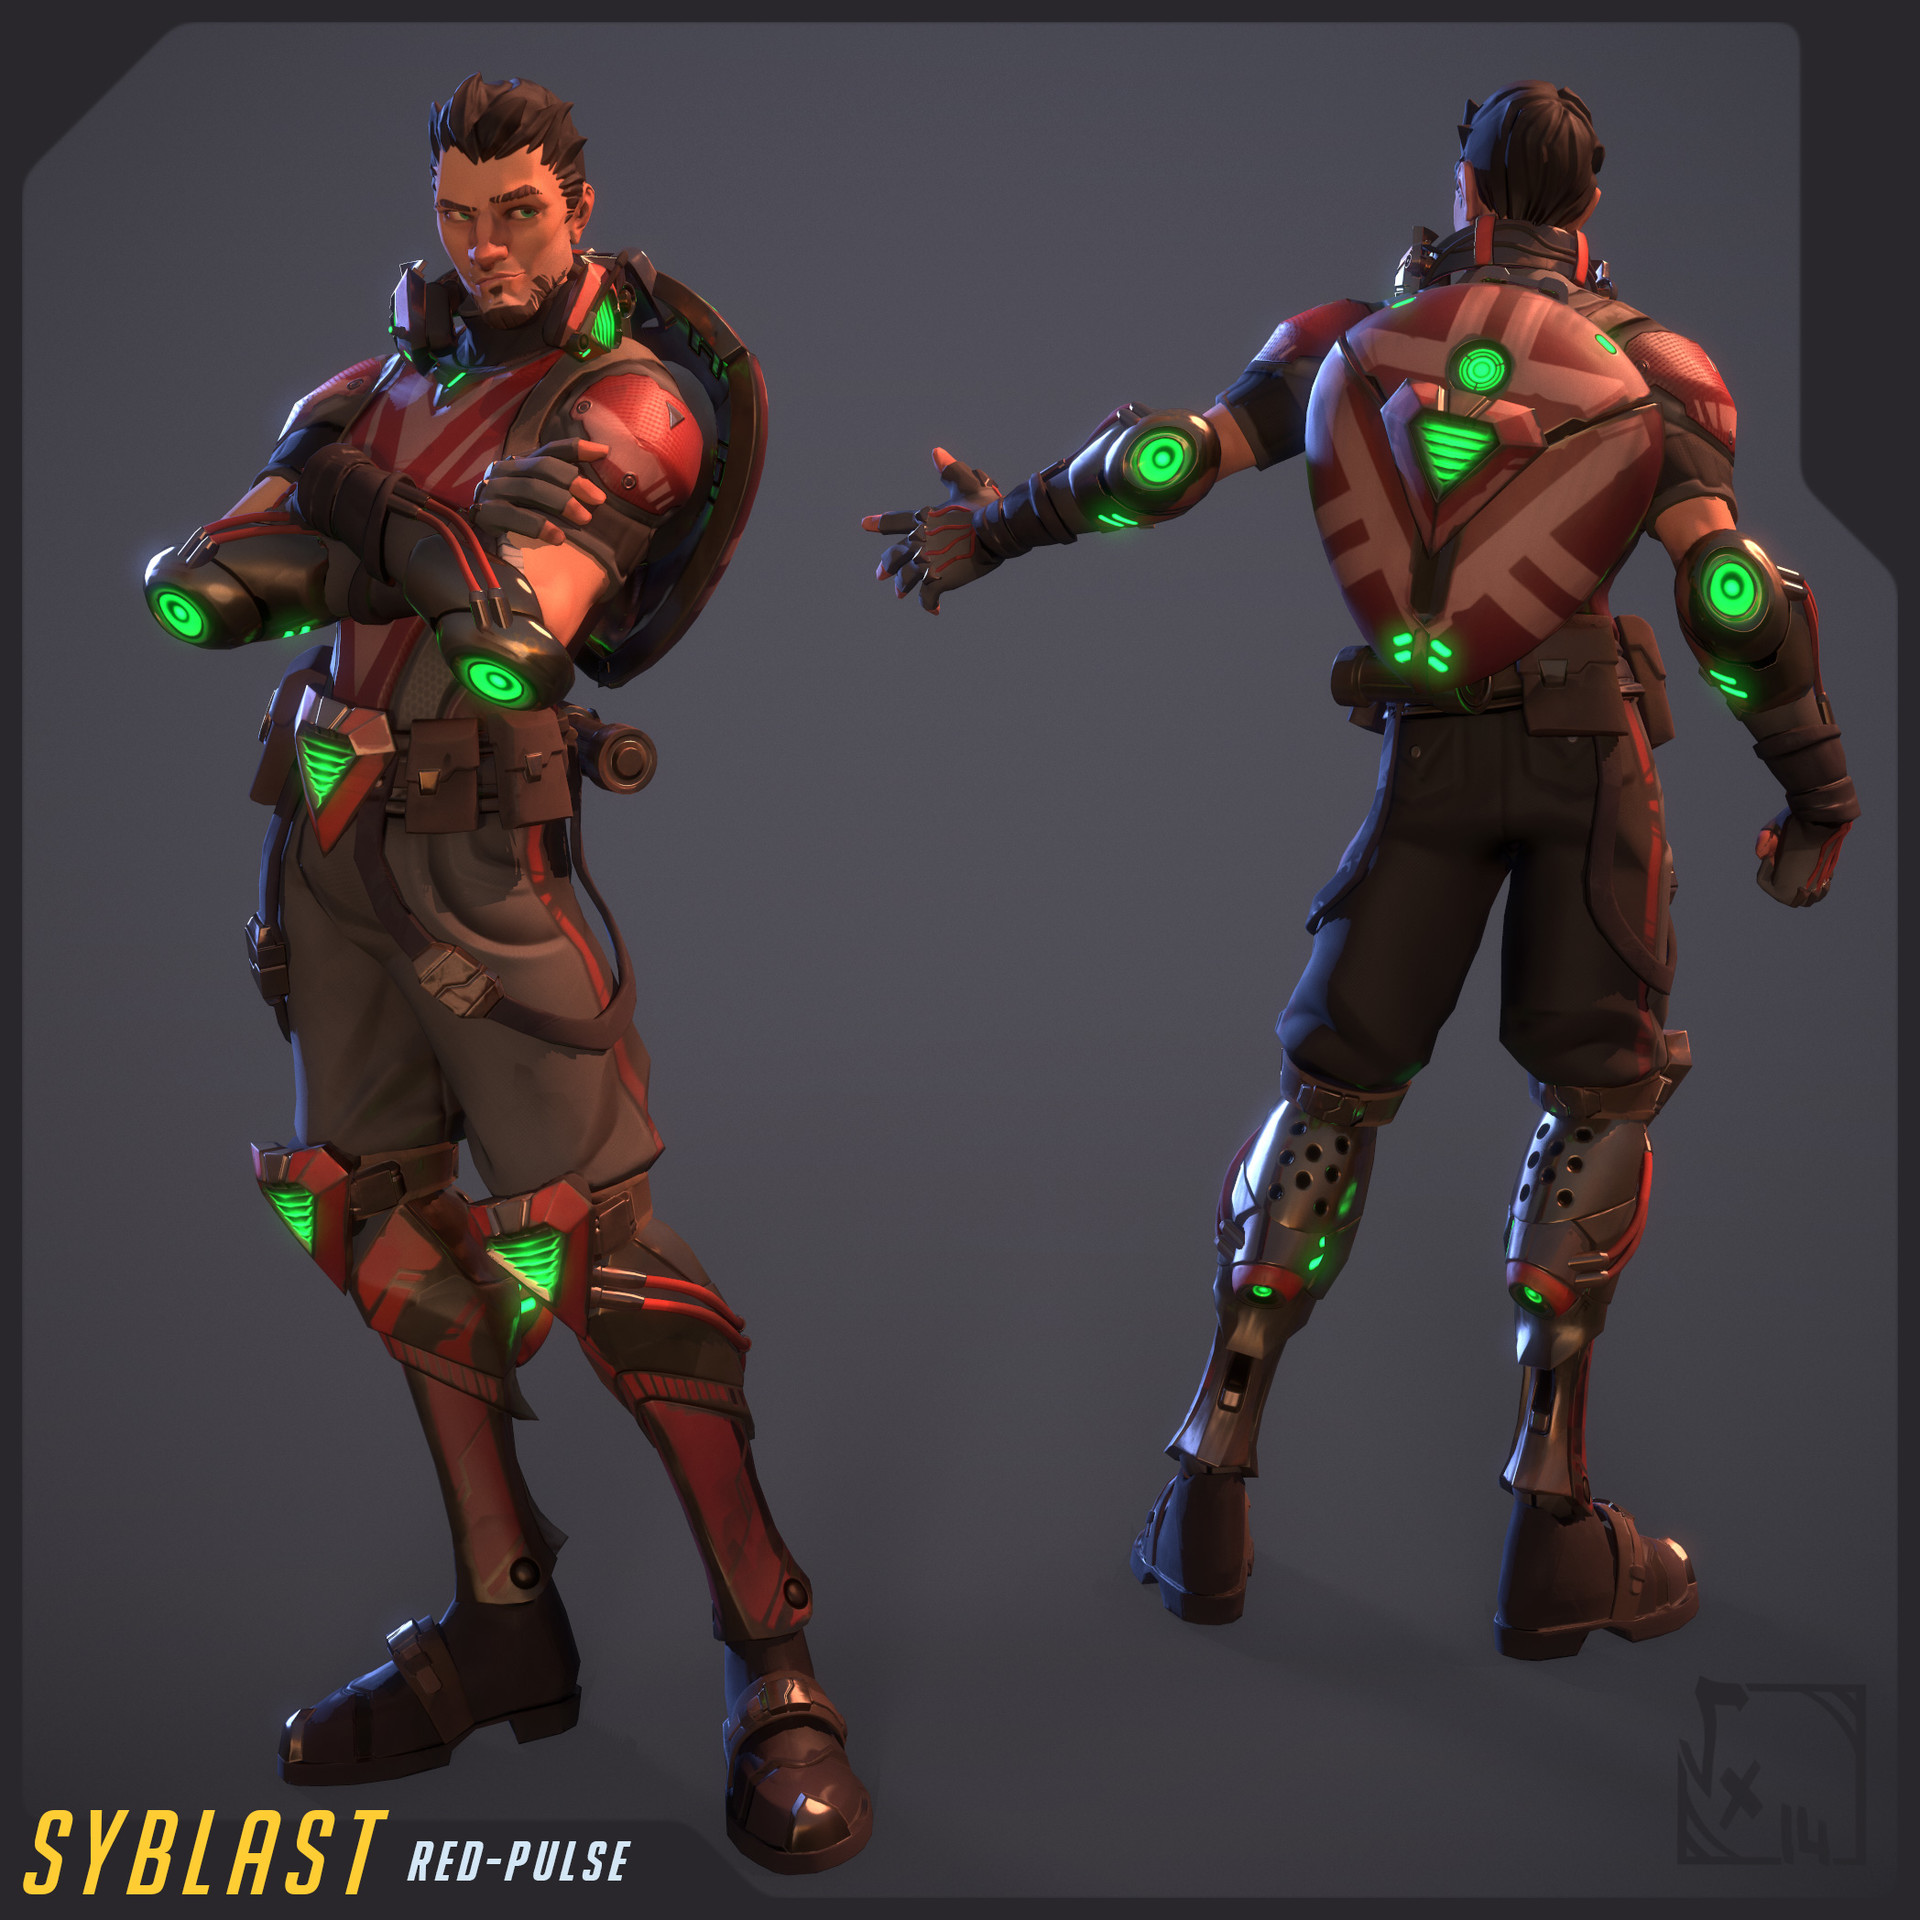 Syblast - Red-Pulse skin - fully textured with 3D-Coat and rigged/skinned on Akeytsu